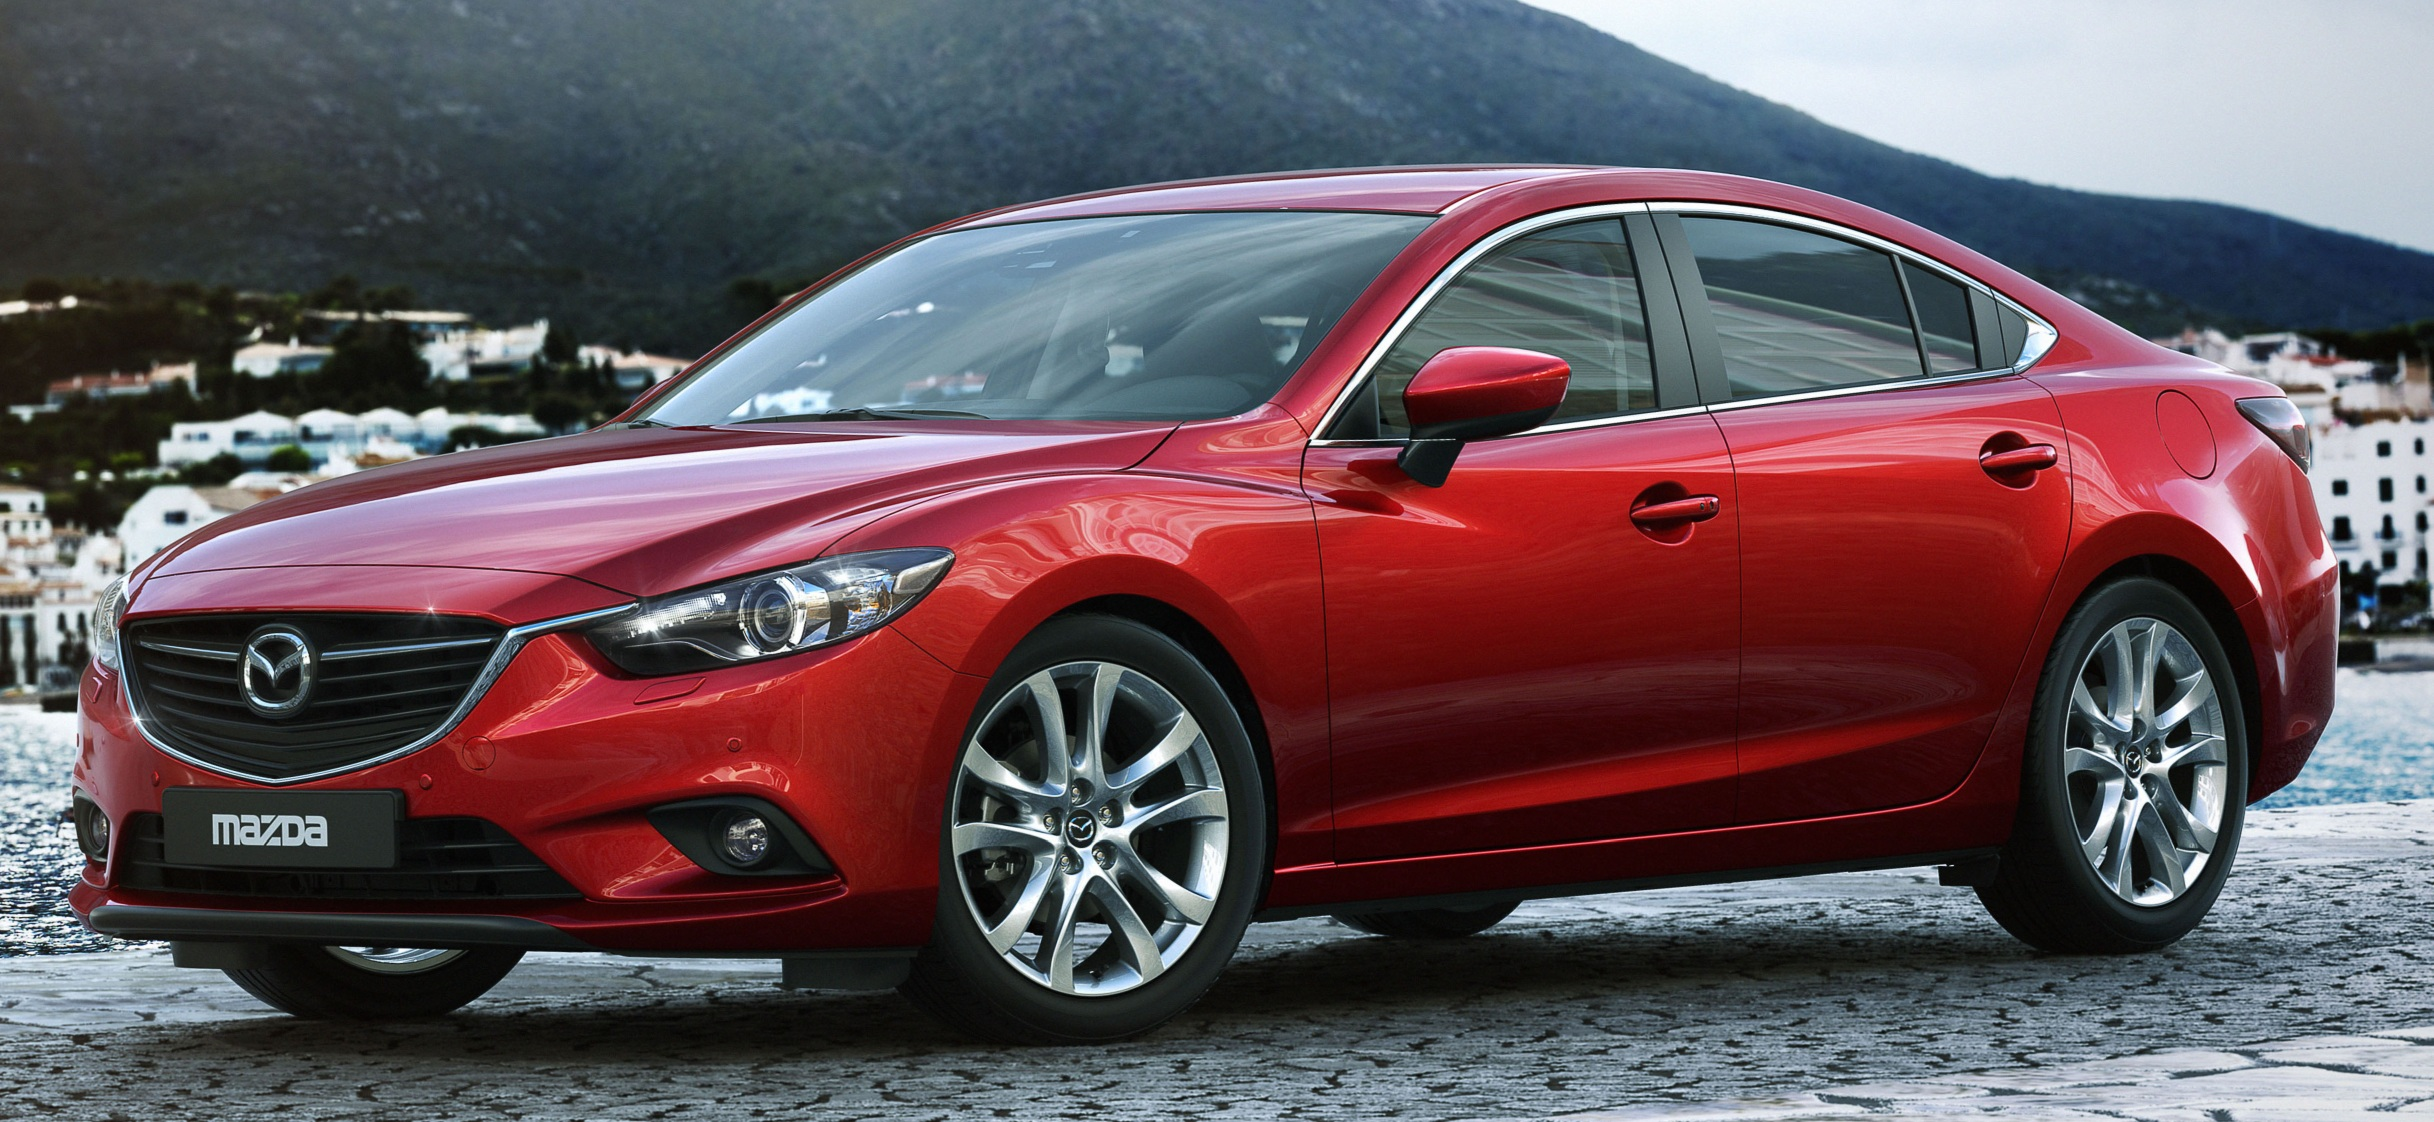 Cars Are Us >> Mazda6 recall programme involves 40 cars in Malaysia Image 164470